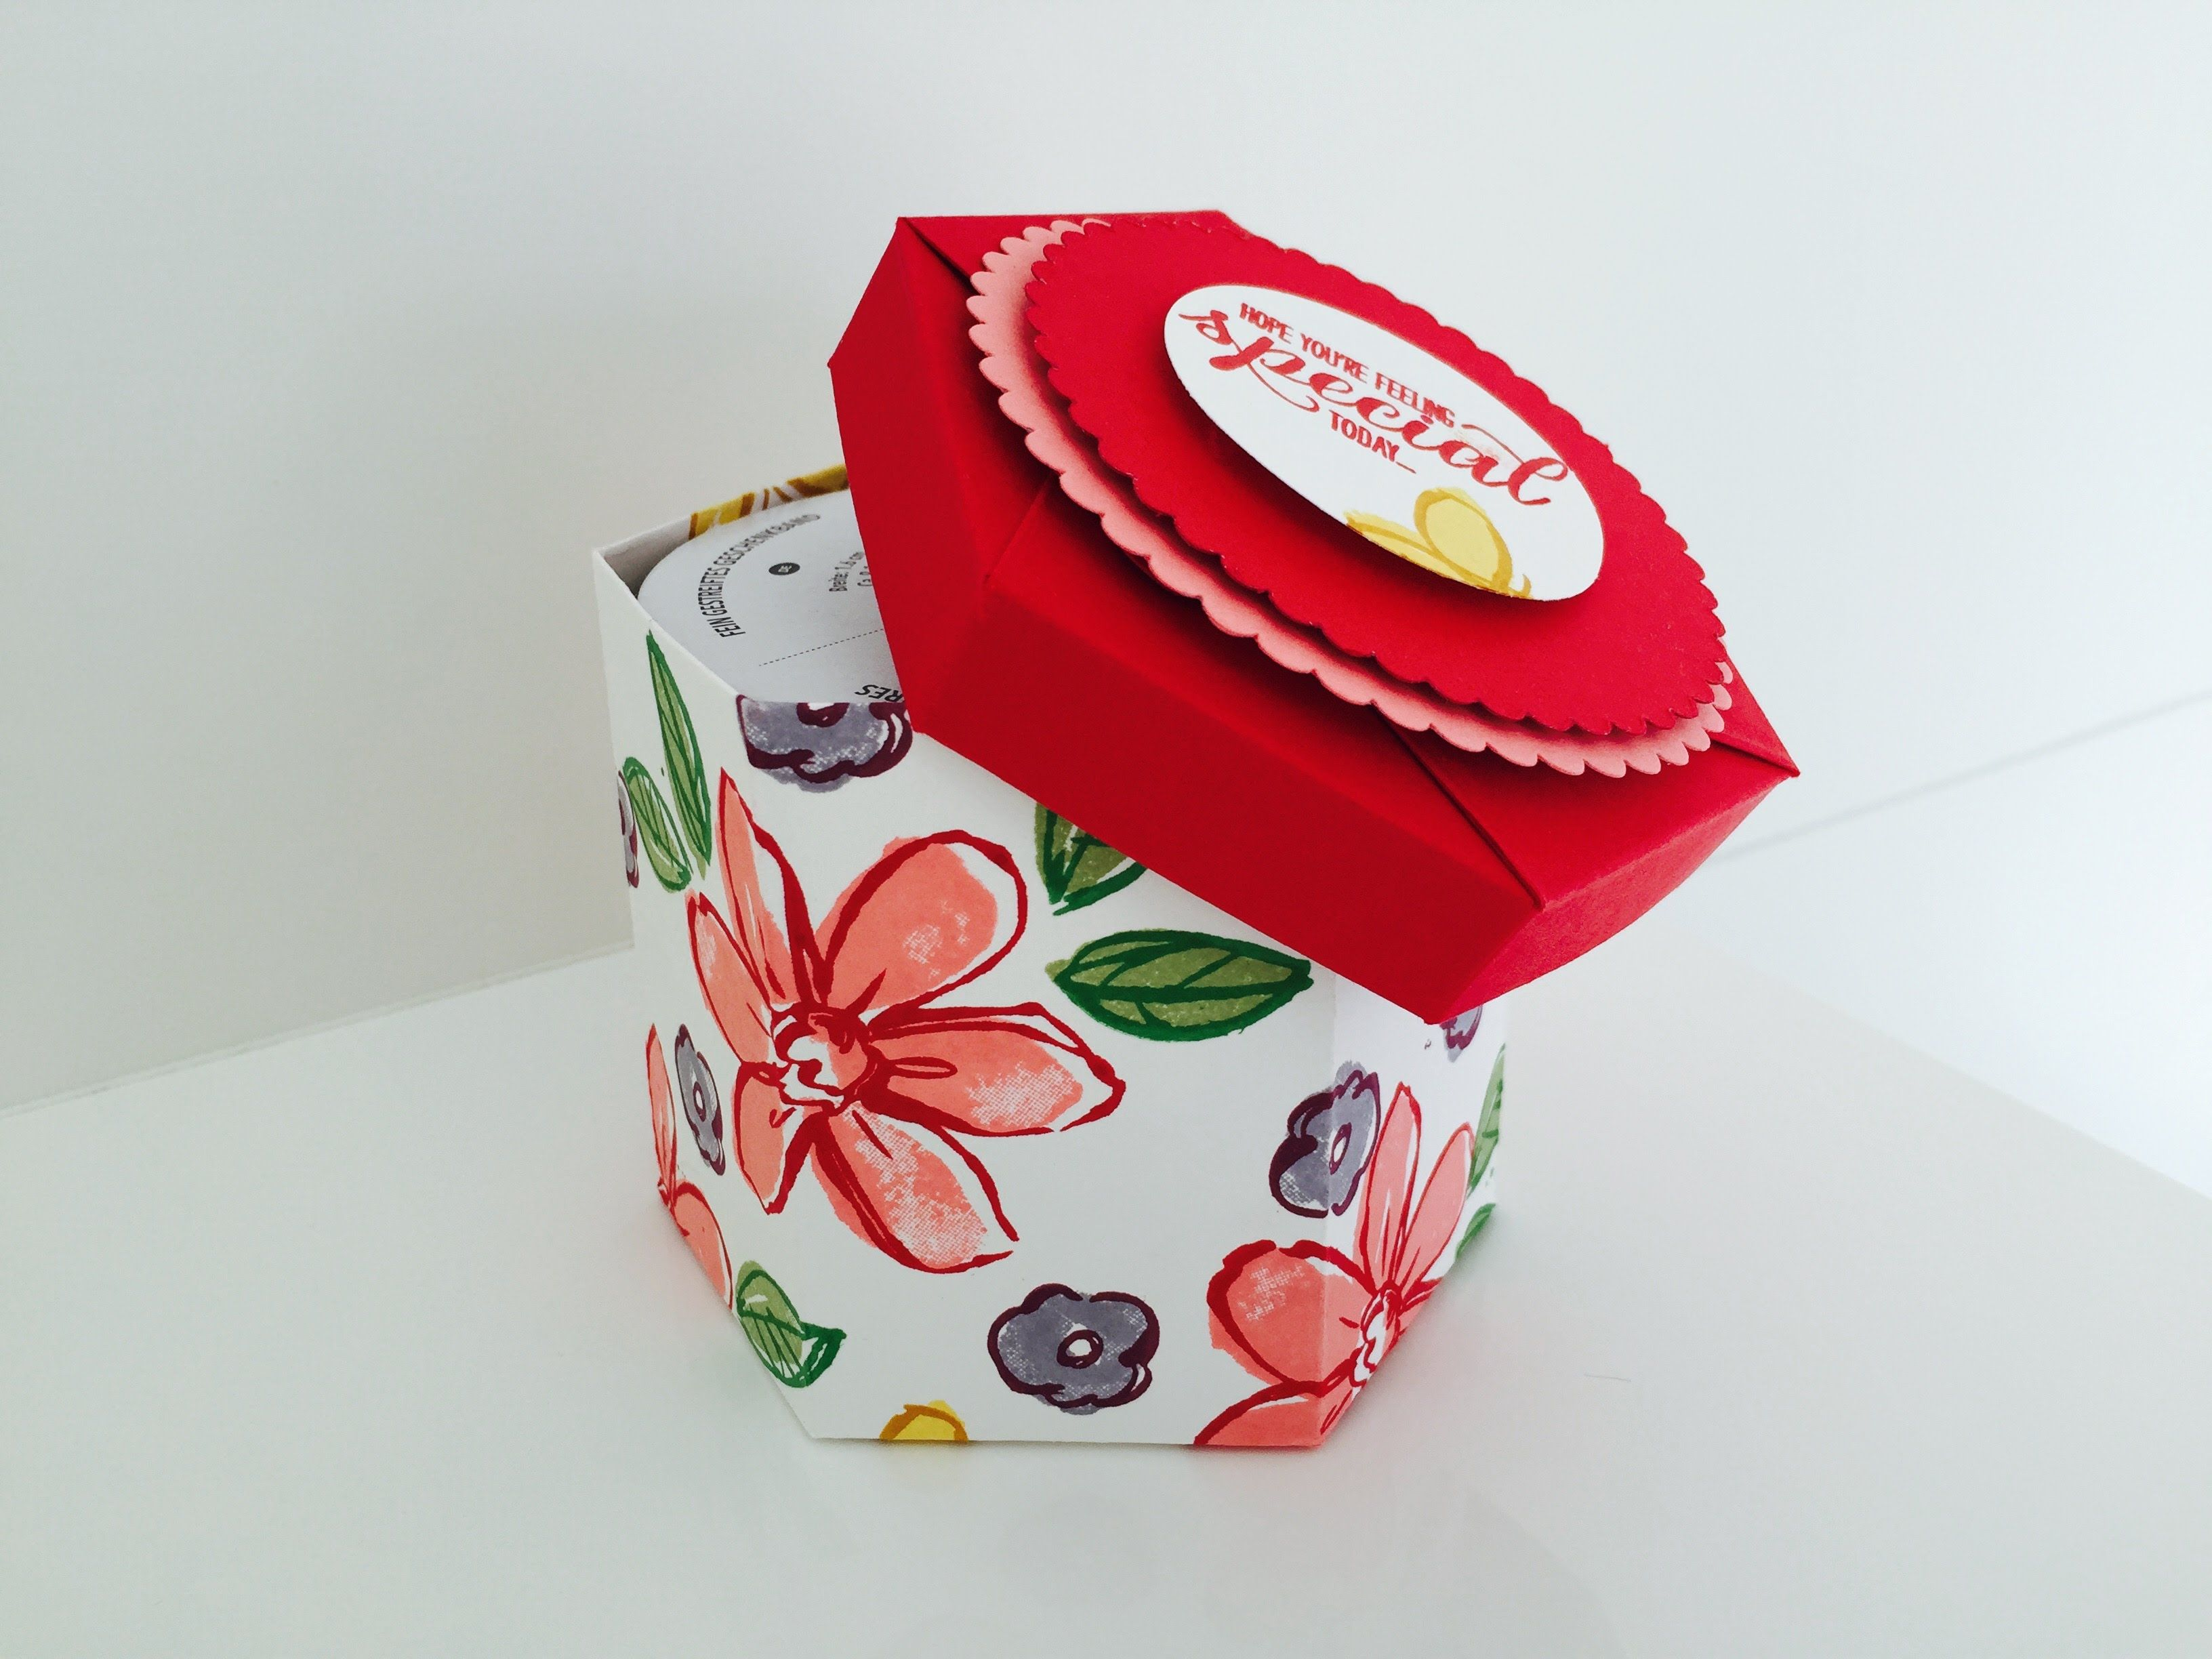 Hexagonal Lidded Gift Box Video Tutorial Using Garden In Bloom By Stampin Up Diy Gift Box Craft Box Box Bag Tutorial